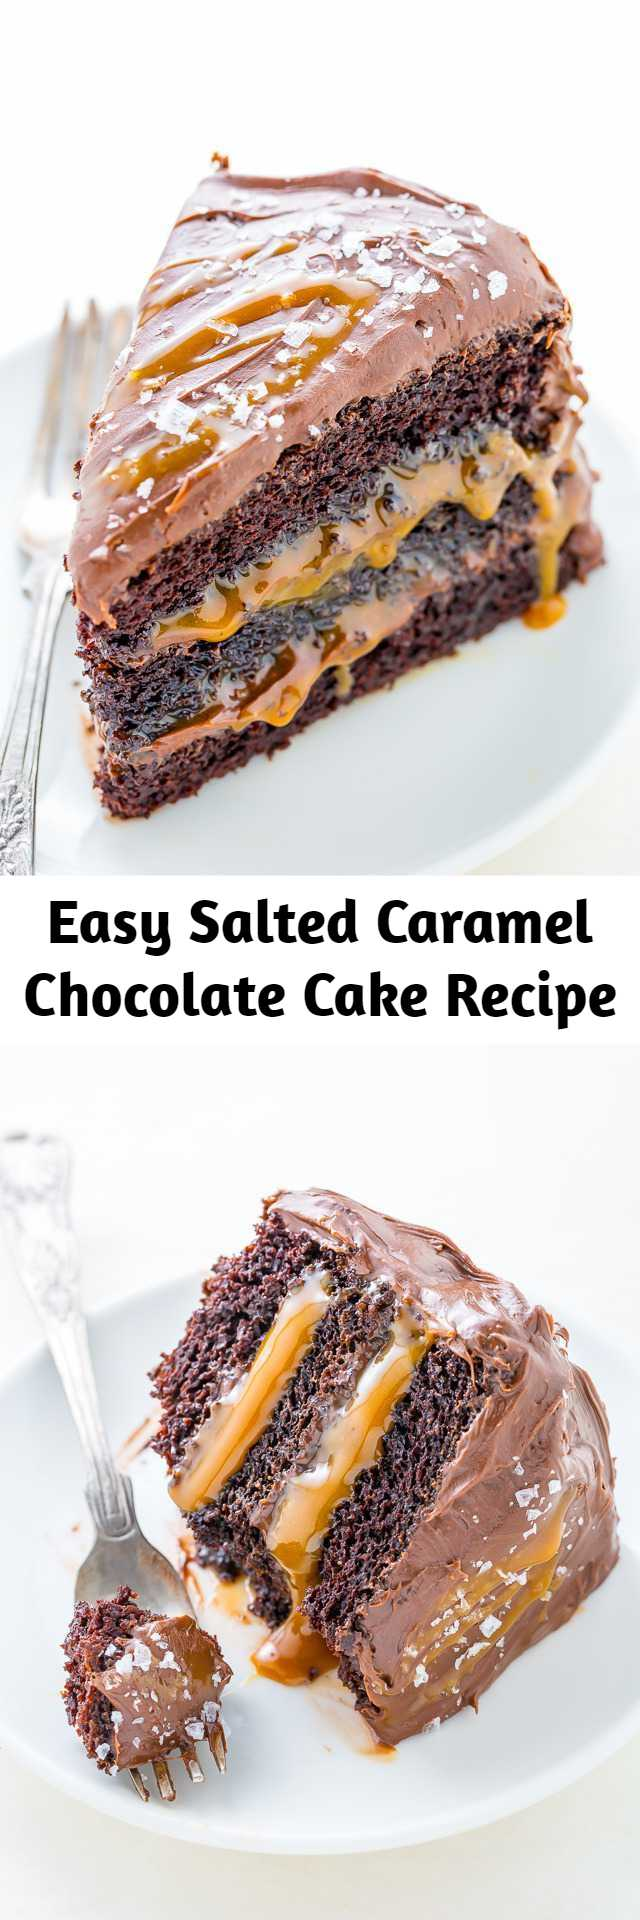 Easy Salted Caramel Chocolate Cake Recipe - Three layers of Salted Caramel Chocolate Cake slathered in homemade Chocolate Frosting. This Salted Caramel Chocolate Cake is moist and sinfully decadent! So if you love chocolate and caramel, you'll LOVE this easy recipe for how to make Chocolate Caramel Cake!